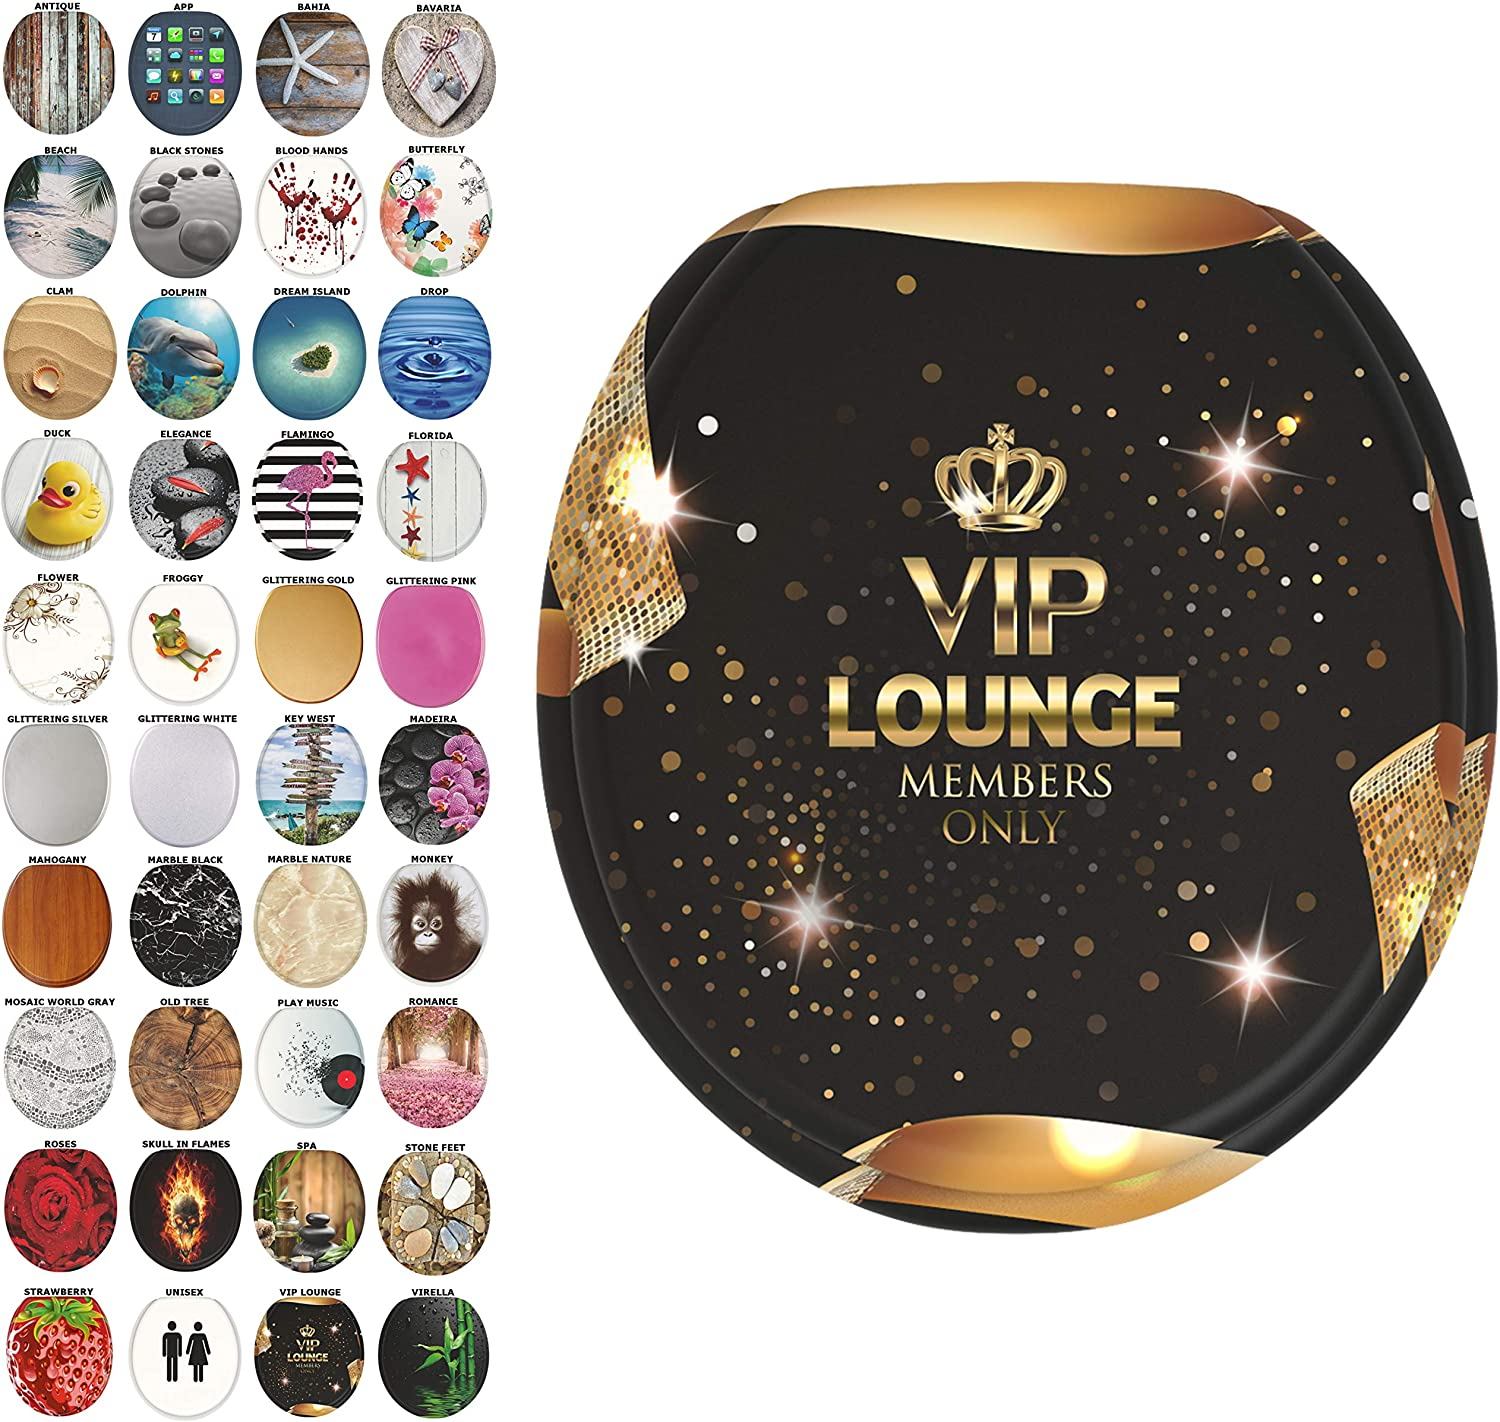 Sanilo Round Toilet Seat, Wide Choice of Slow Close Toilet Seats, Molded Wood, Strong Hinges (VIP-Lounge)